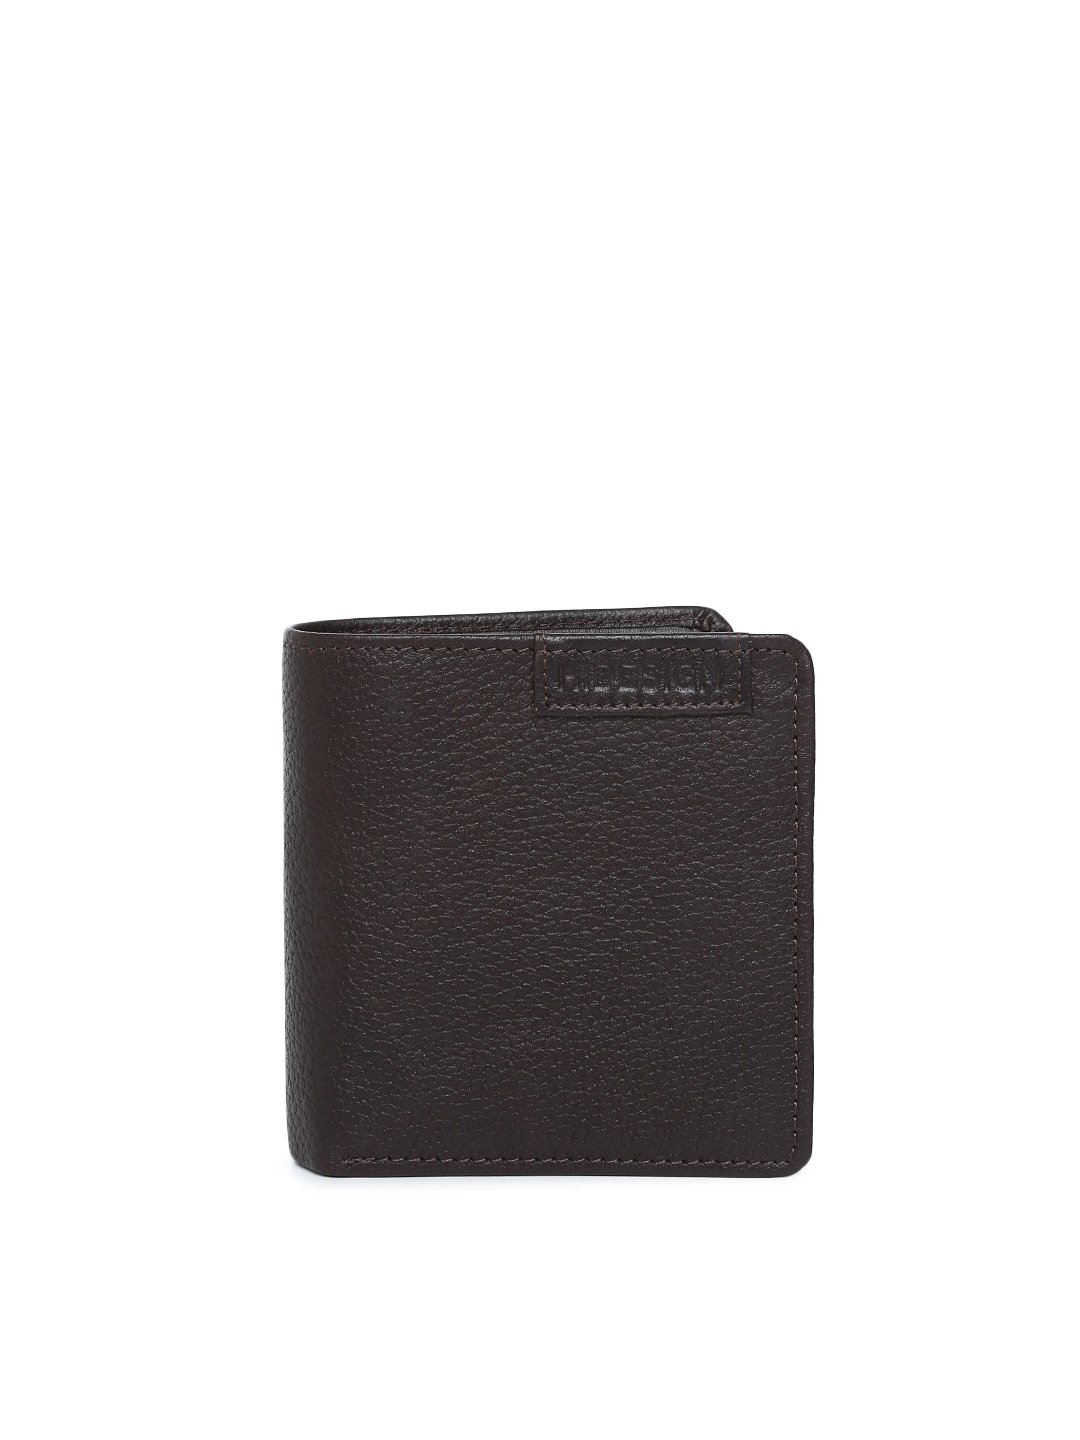 quality design c74aa 28f30 Mens Wallets - Buy Wallets for Men Online at Best Price   Myntra